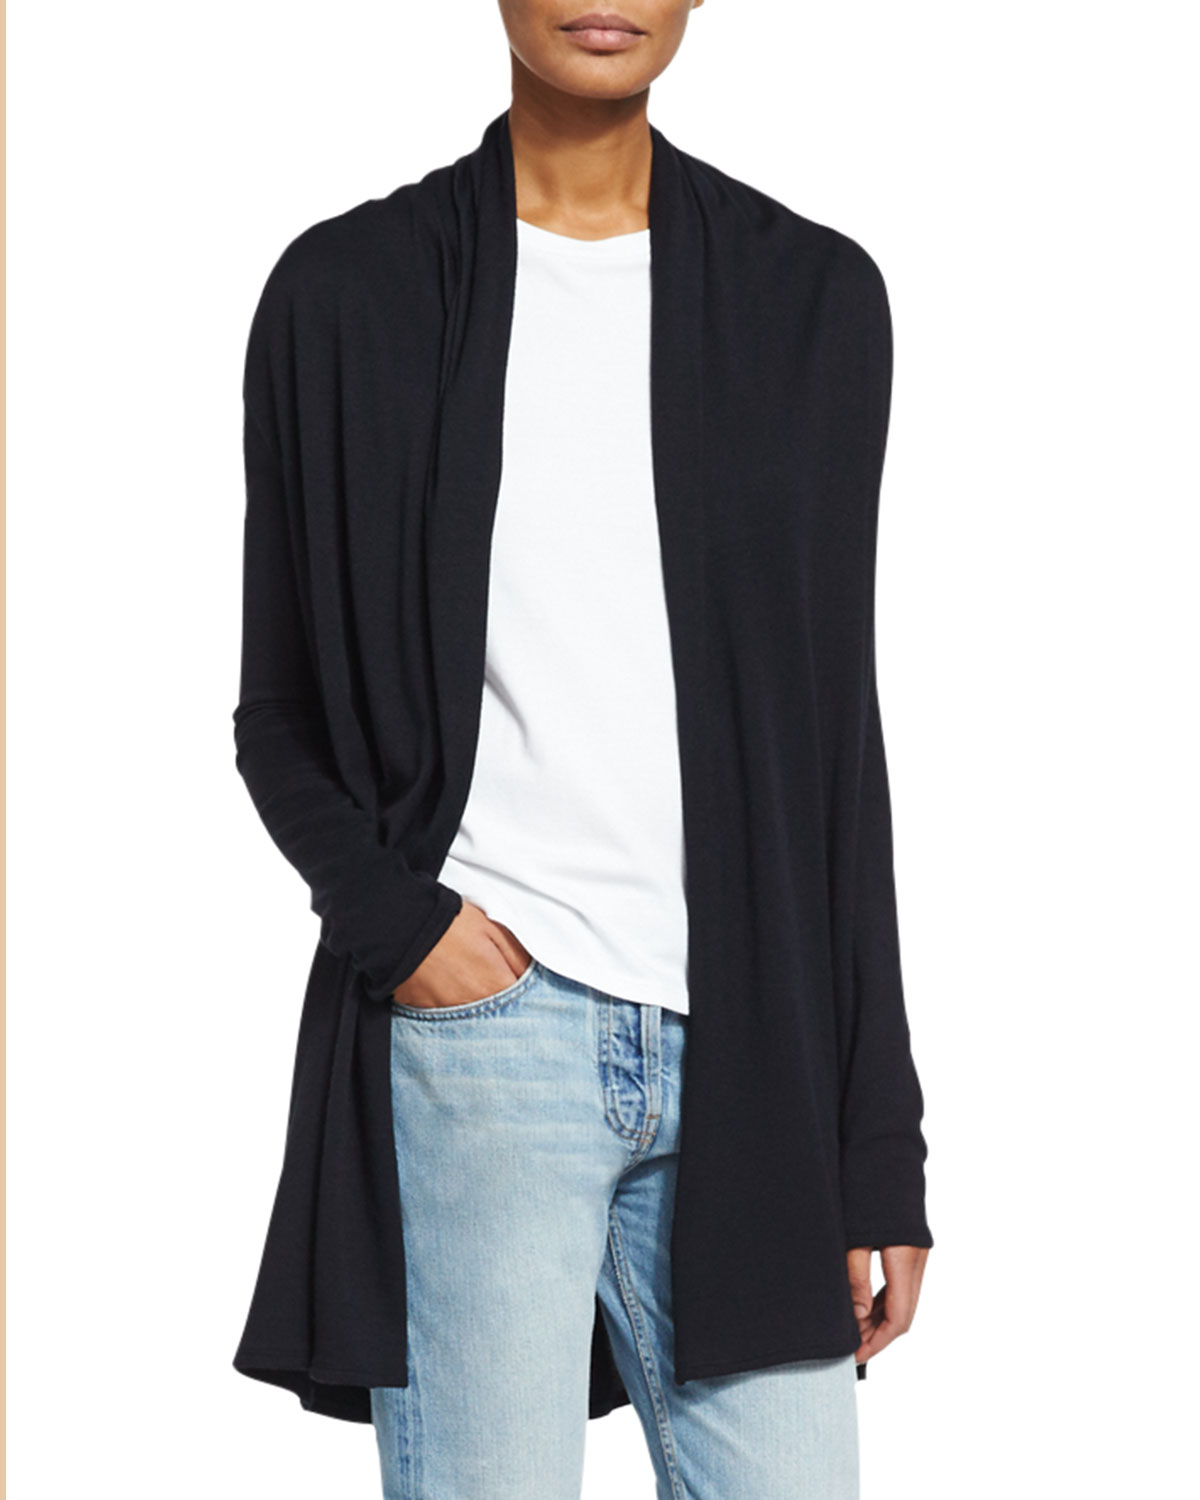 a8192cacc850 THE ROW Knightsbridge Open-Front Sweater